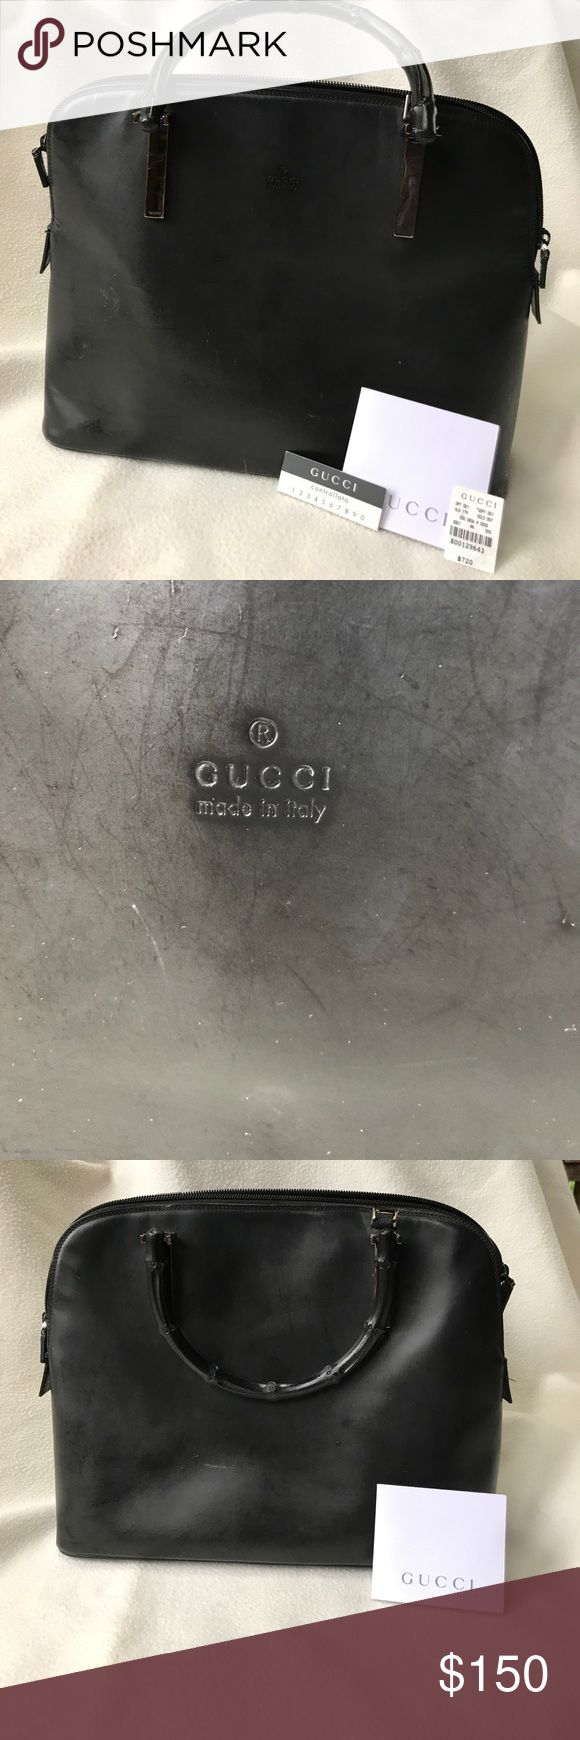 Vintage Gucci bag Gently used Gucci bag. Very Audrey Hepburn! Wearing on bottom corners. Super clean inside. Price tag comes with it. Gucci Bags Satchels